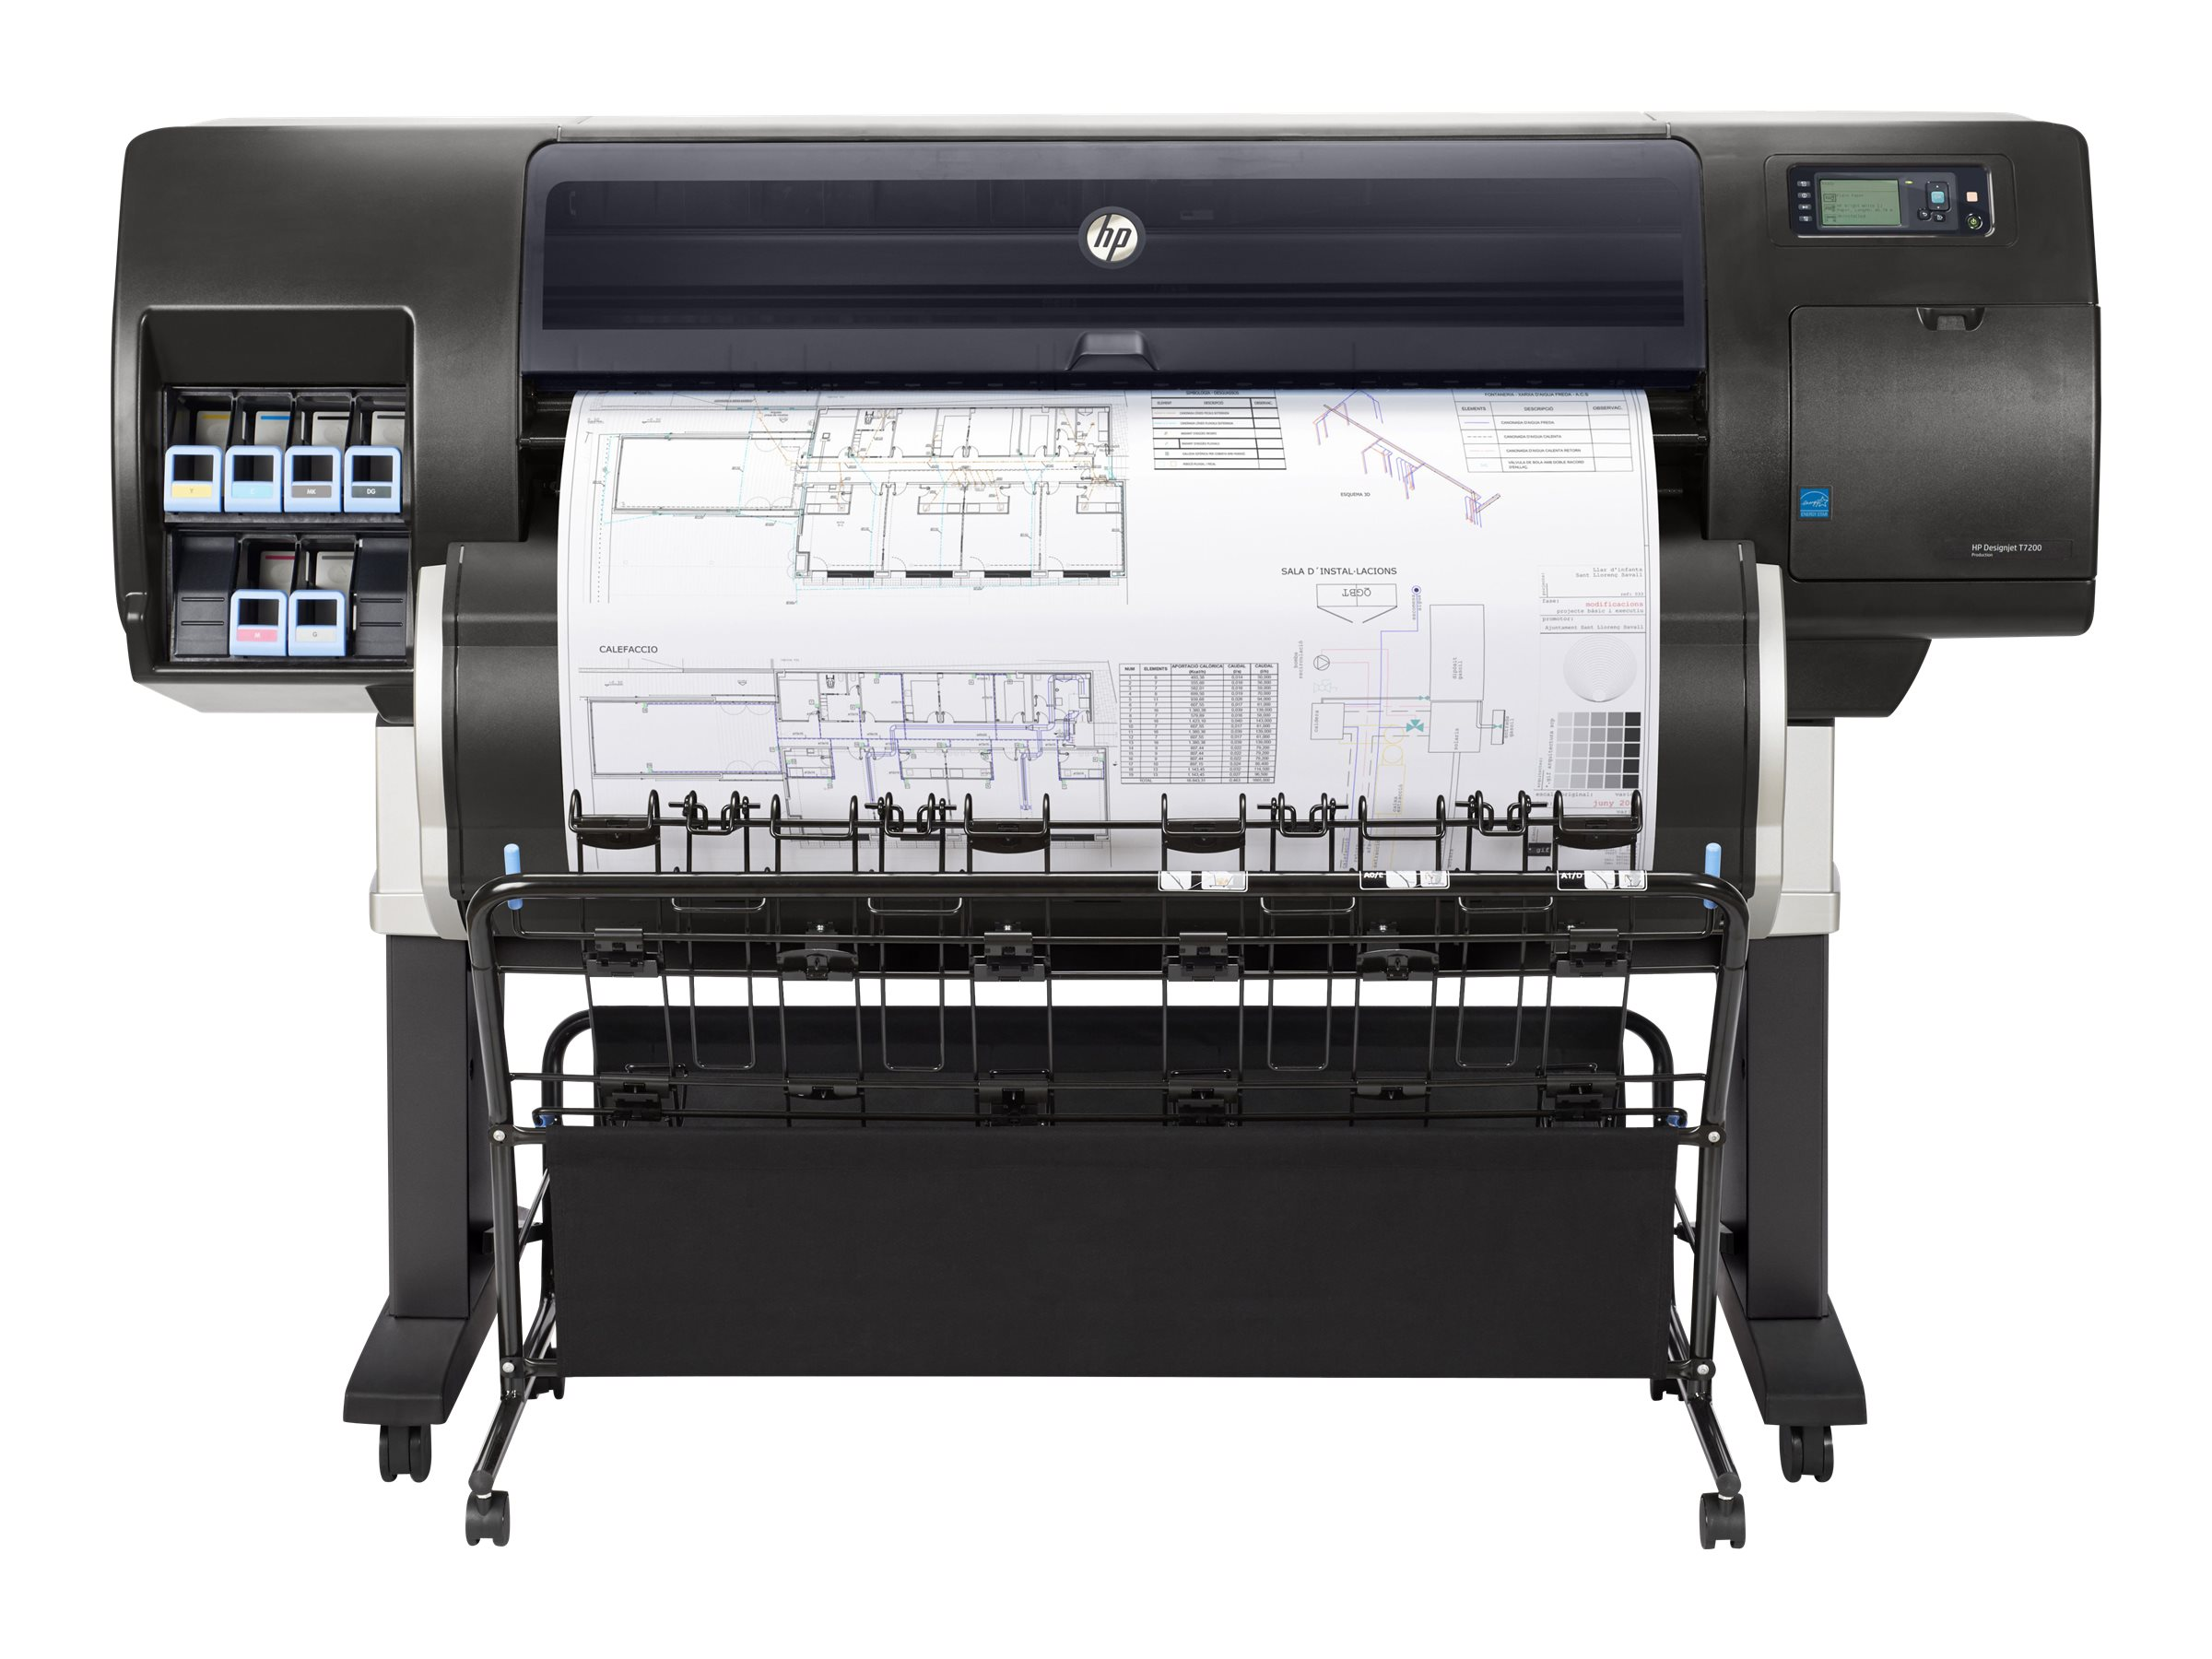 HP Designjet T7200 Production Printer, F2L46A#B1K